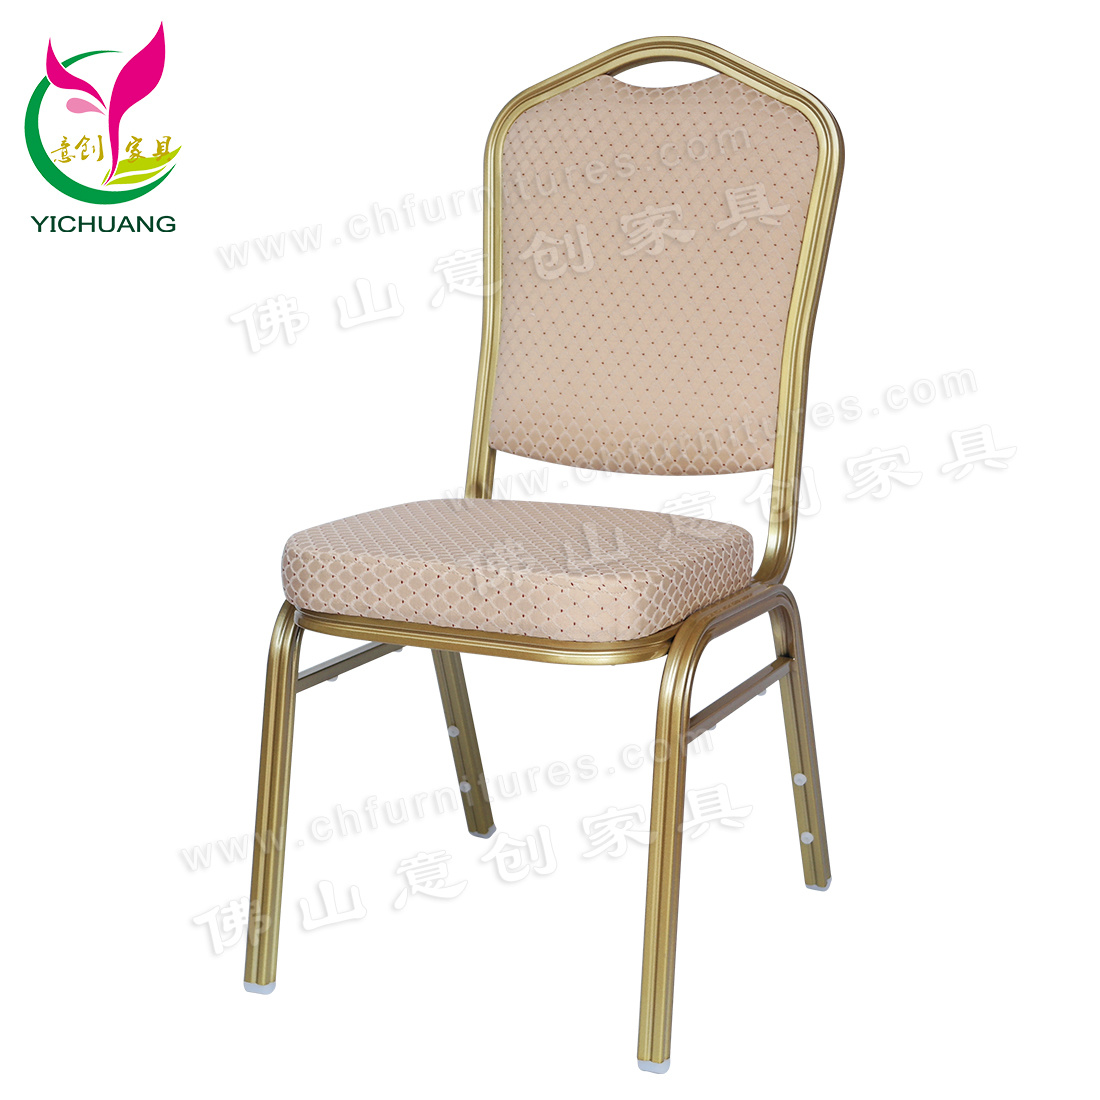 Hot Item Yc Zg30 02 Comfortable Rental Stackable Metal Chair For Banquet